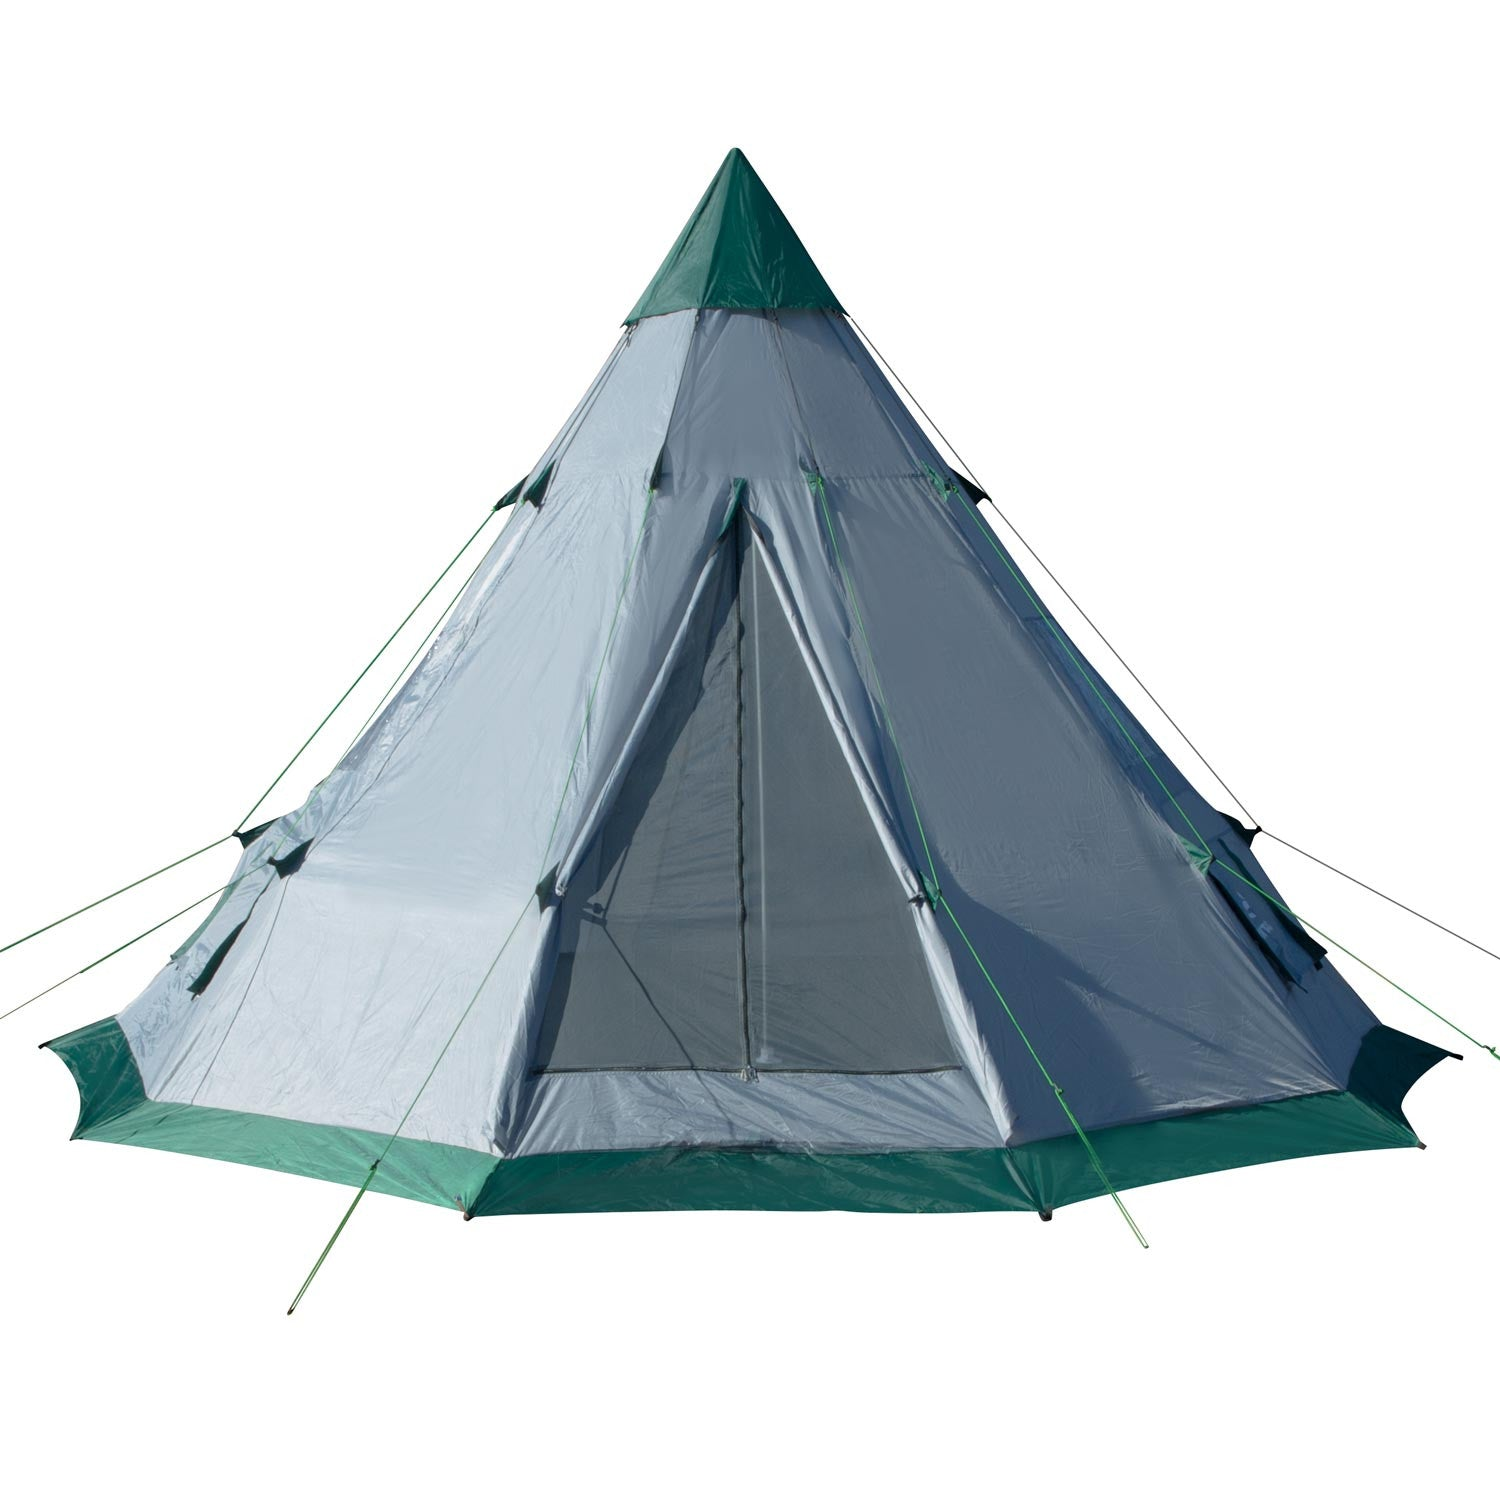 ... teepee tent family tent for c&ing  sc 1 st  Winterial.com & 12-foot Diameter 7-Person Family Camping Teepee Tent - Winterial.com